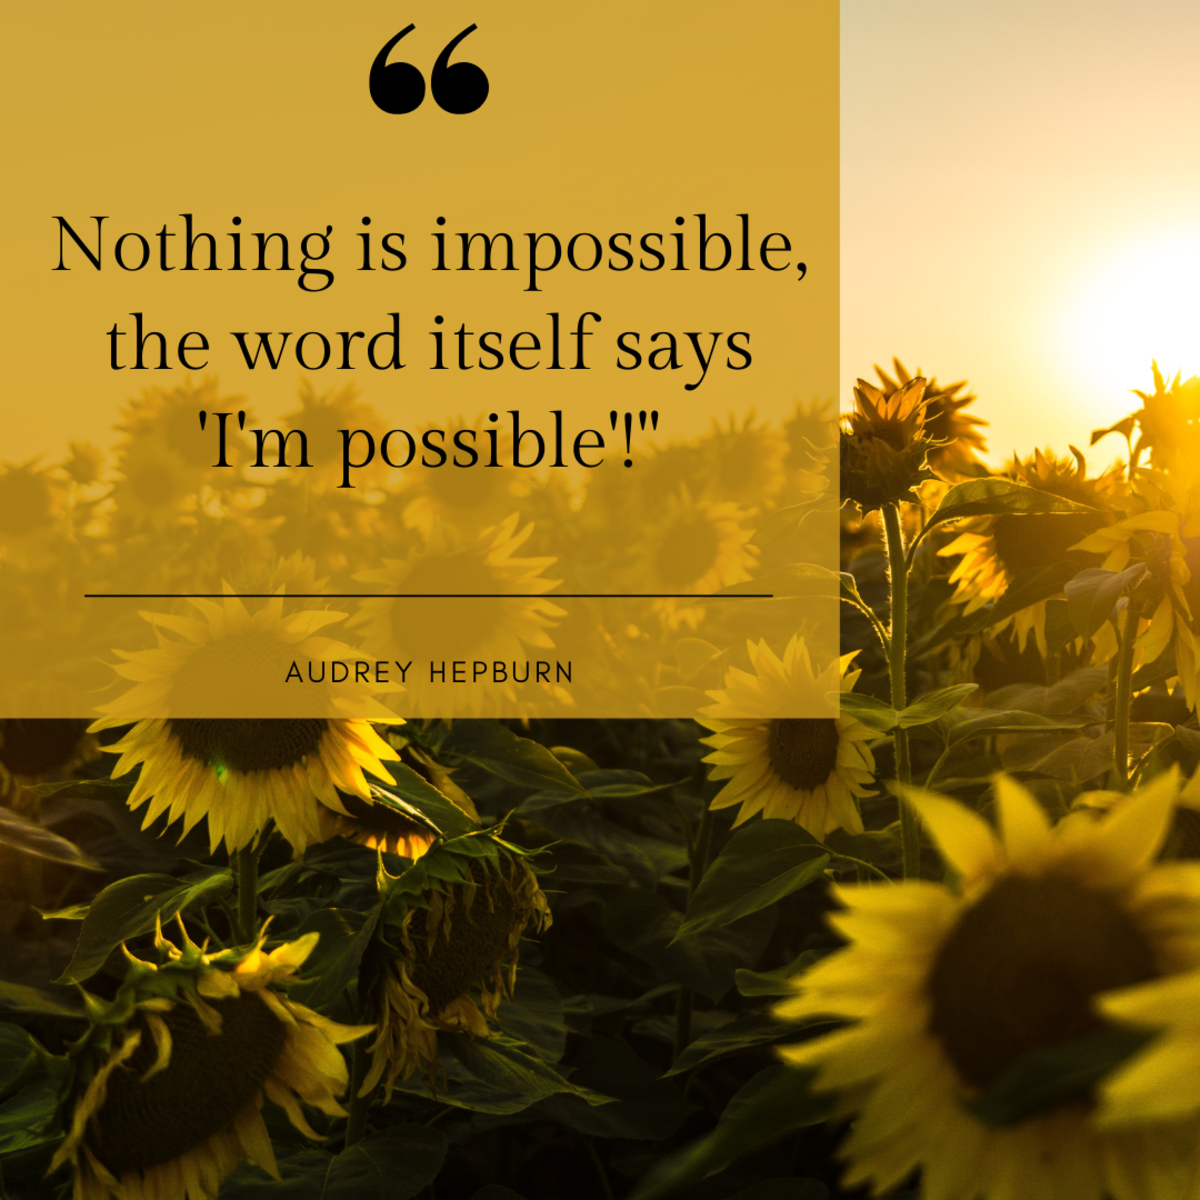 Believe in your own possibilities!